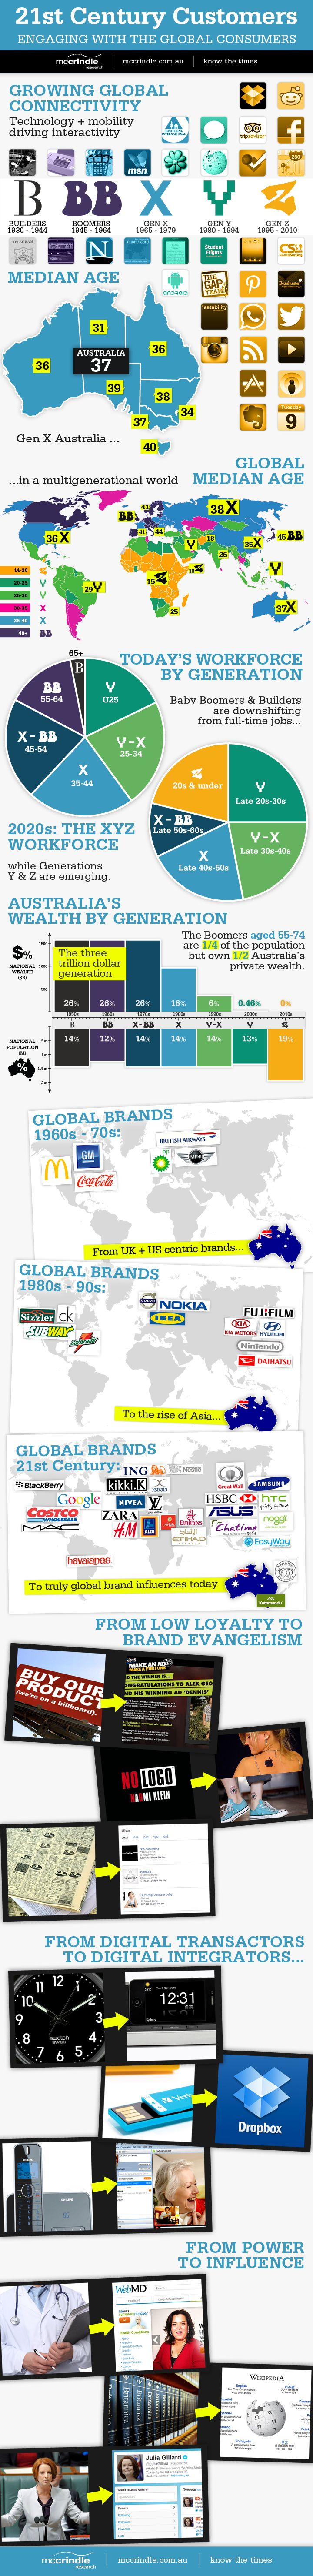 This McCrindle Research infographic maps out how increasingly global Australia's market culture has become over the decades. It also takes a look at s